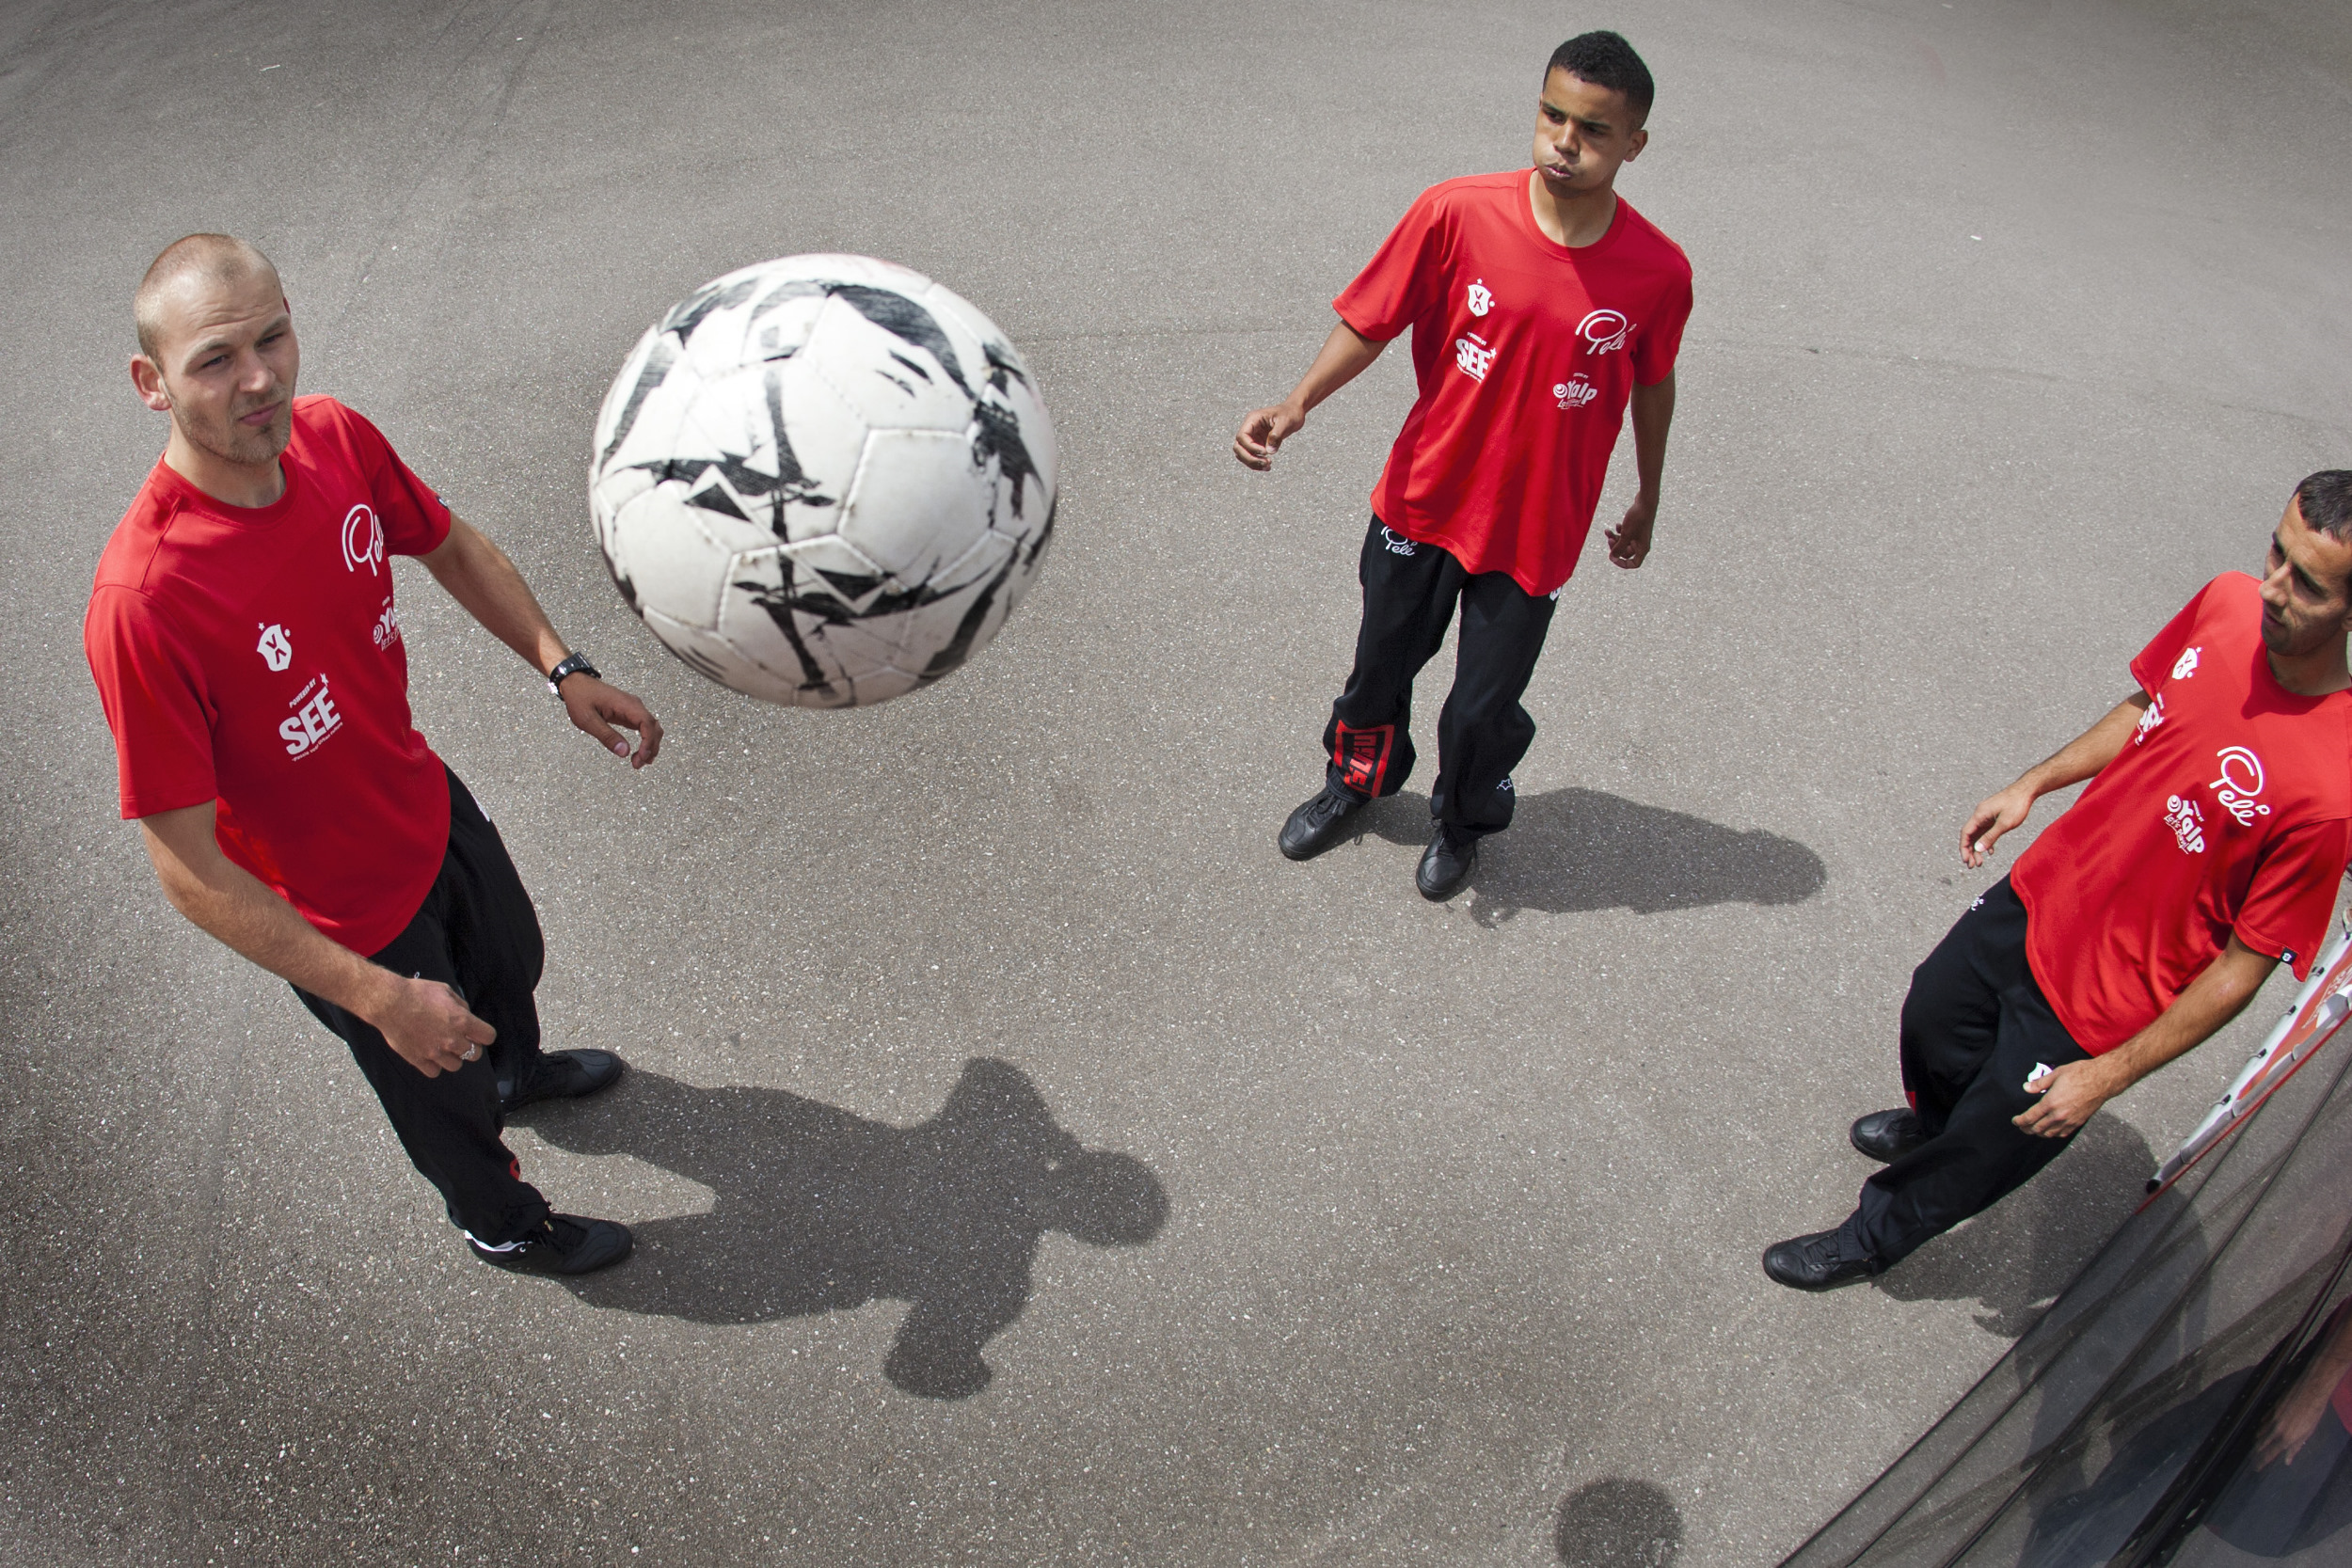 Sport SEE Marketing SUTU Promotie voetbal